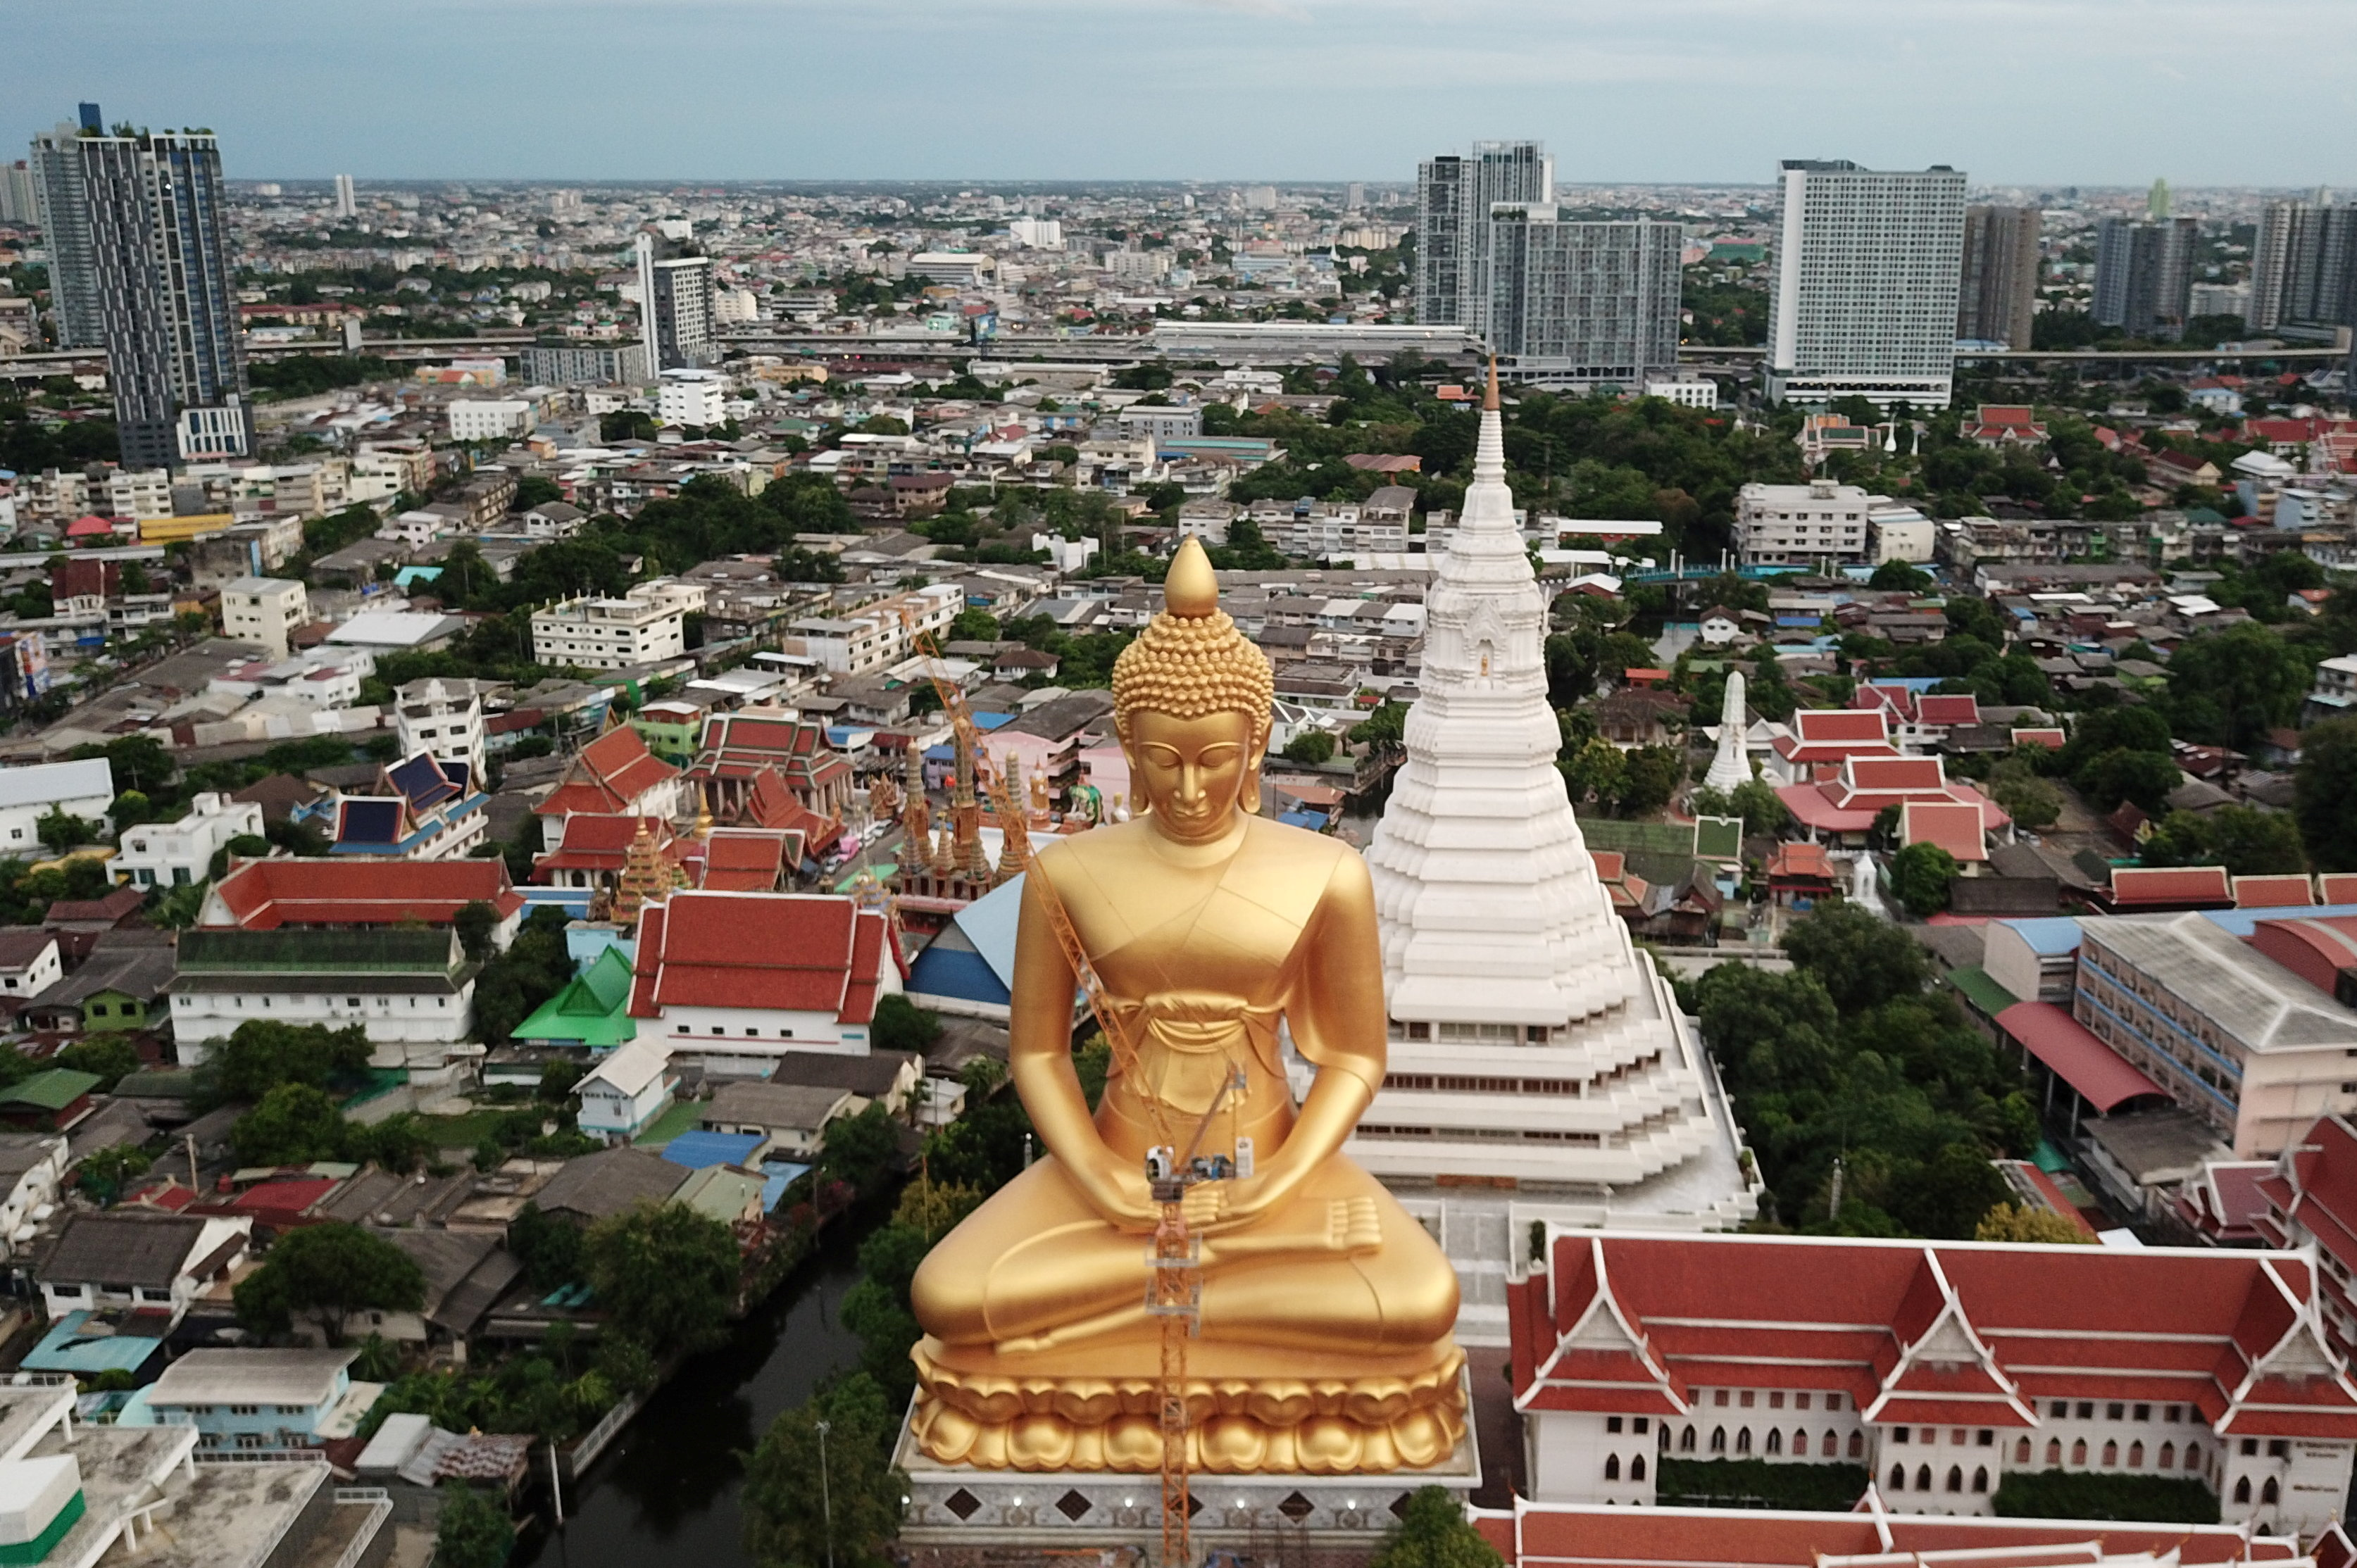 The giant Buddha statue of Wat Paknam Phasi Charoen temple is seen in Bangkok, Thailand, June 10, 2021. Picture taken June 10, 2021 with a drone. REUTERS/Jorge Silva